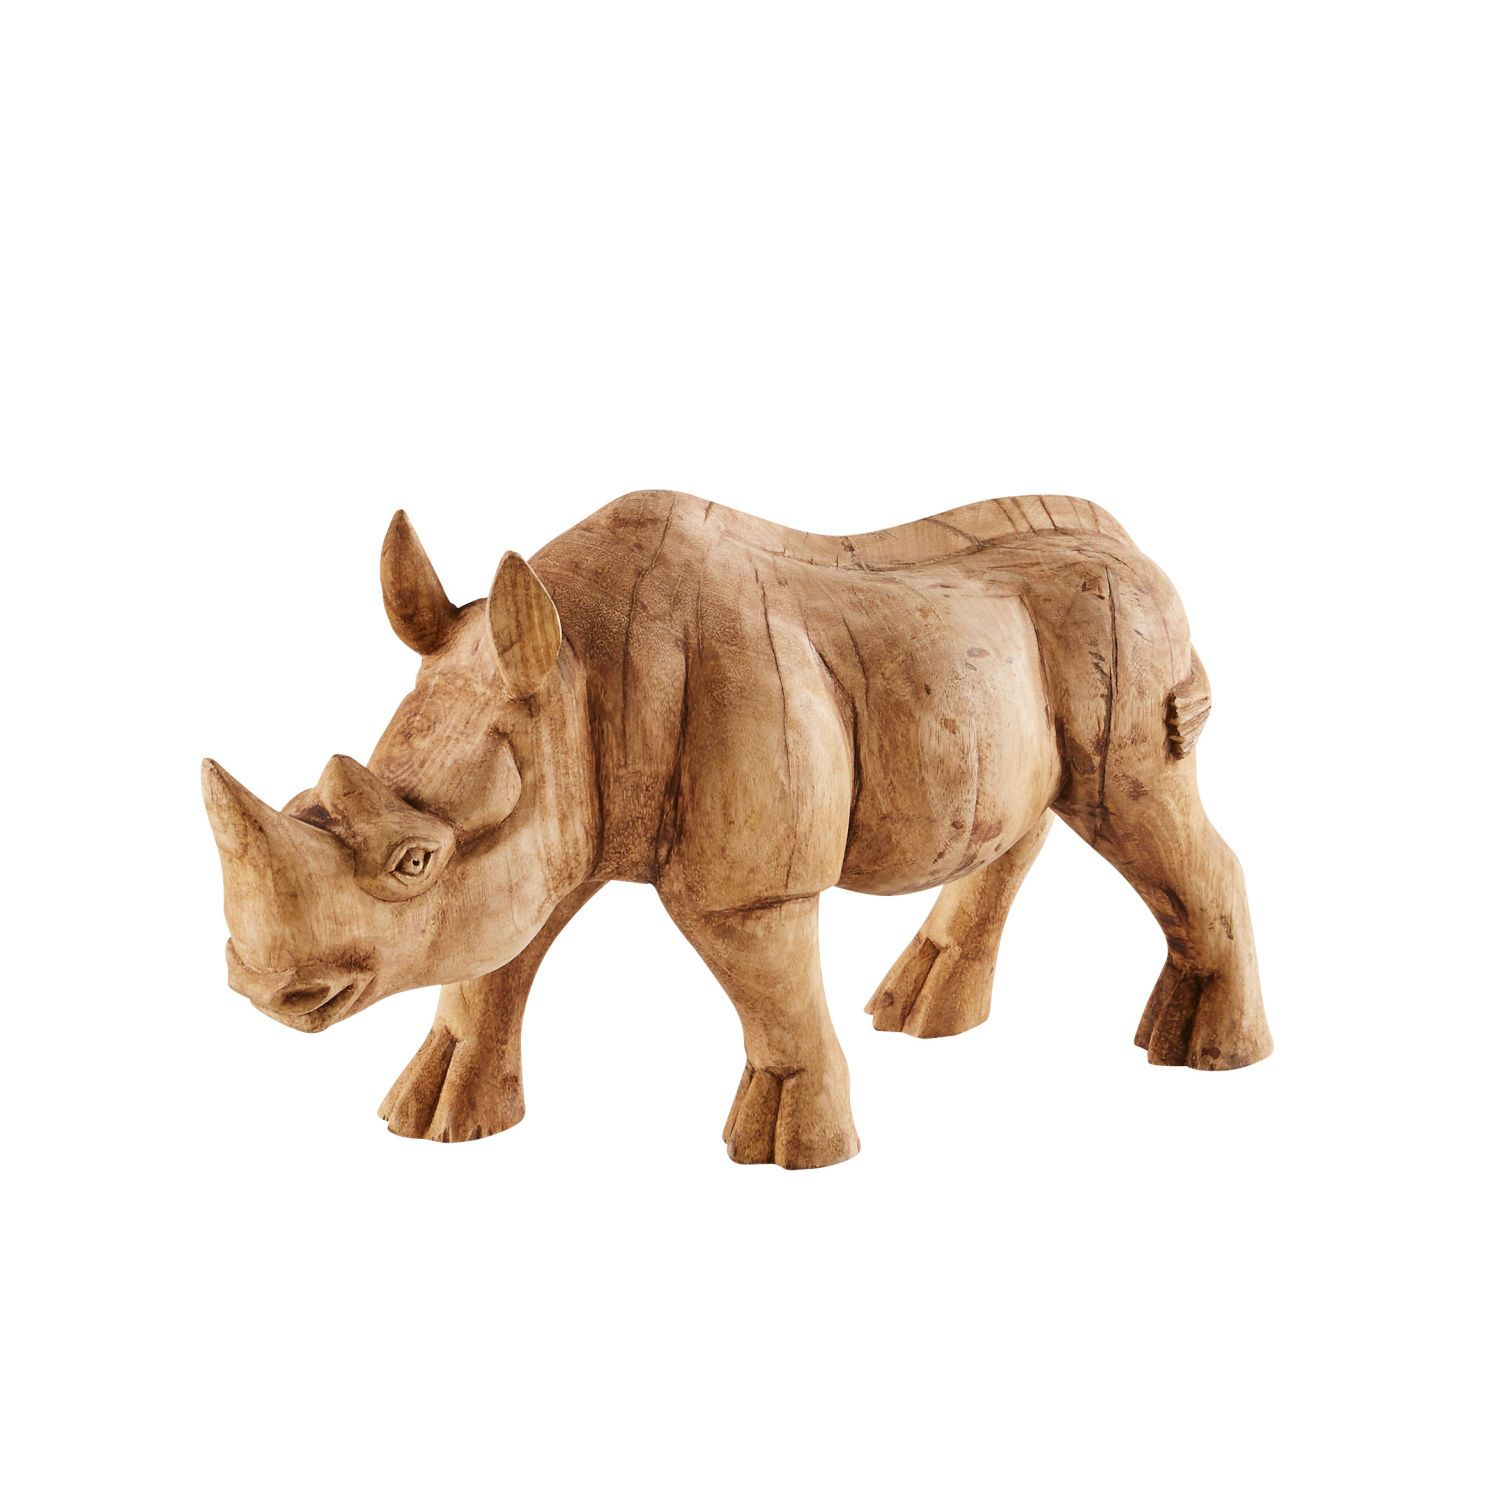 Wanddeko Nashorn Dekoration Action Gifts Geschenke Sculpture Decorative